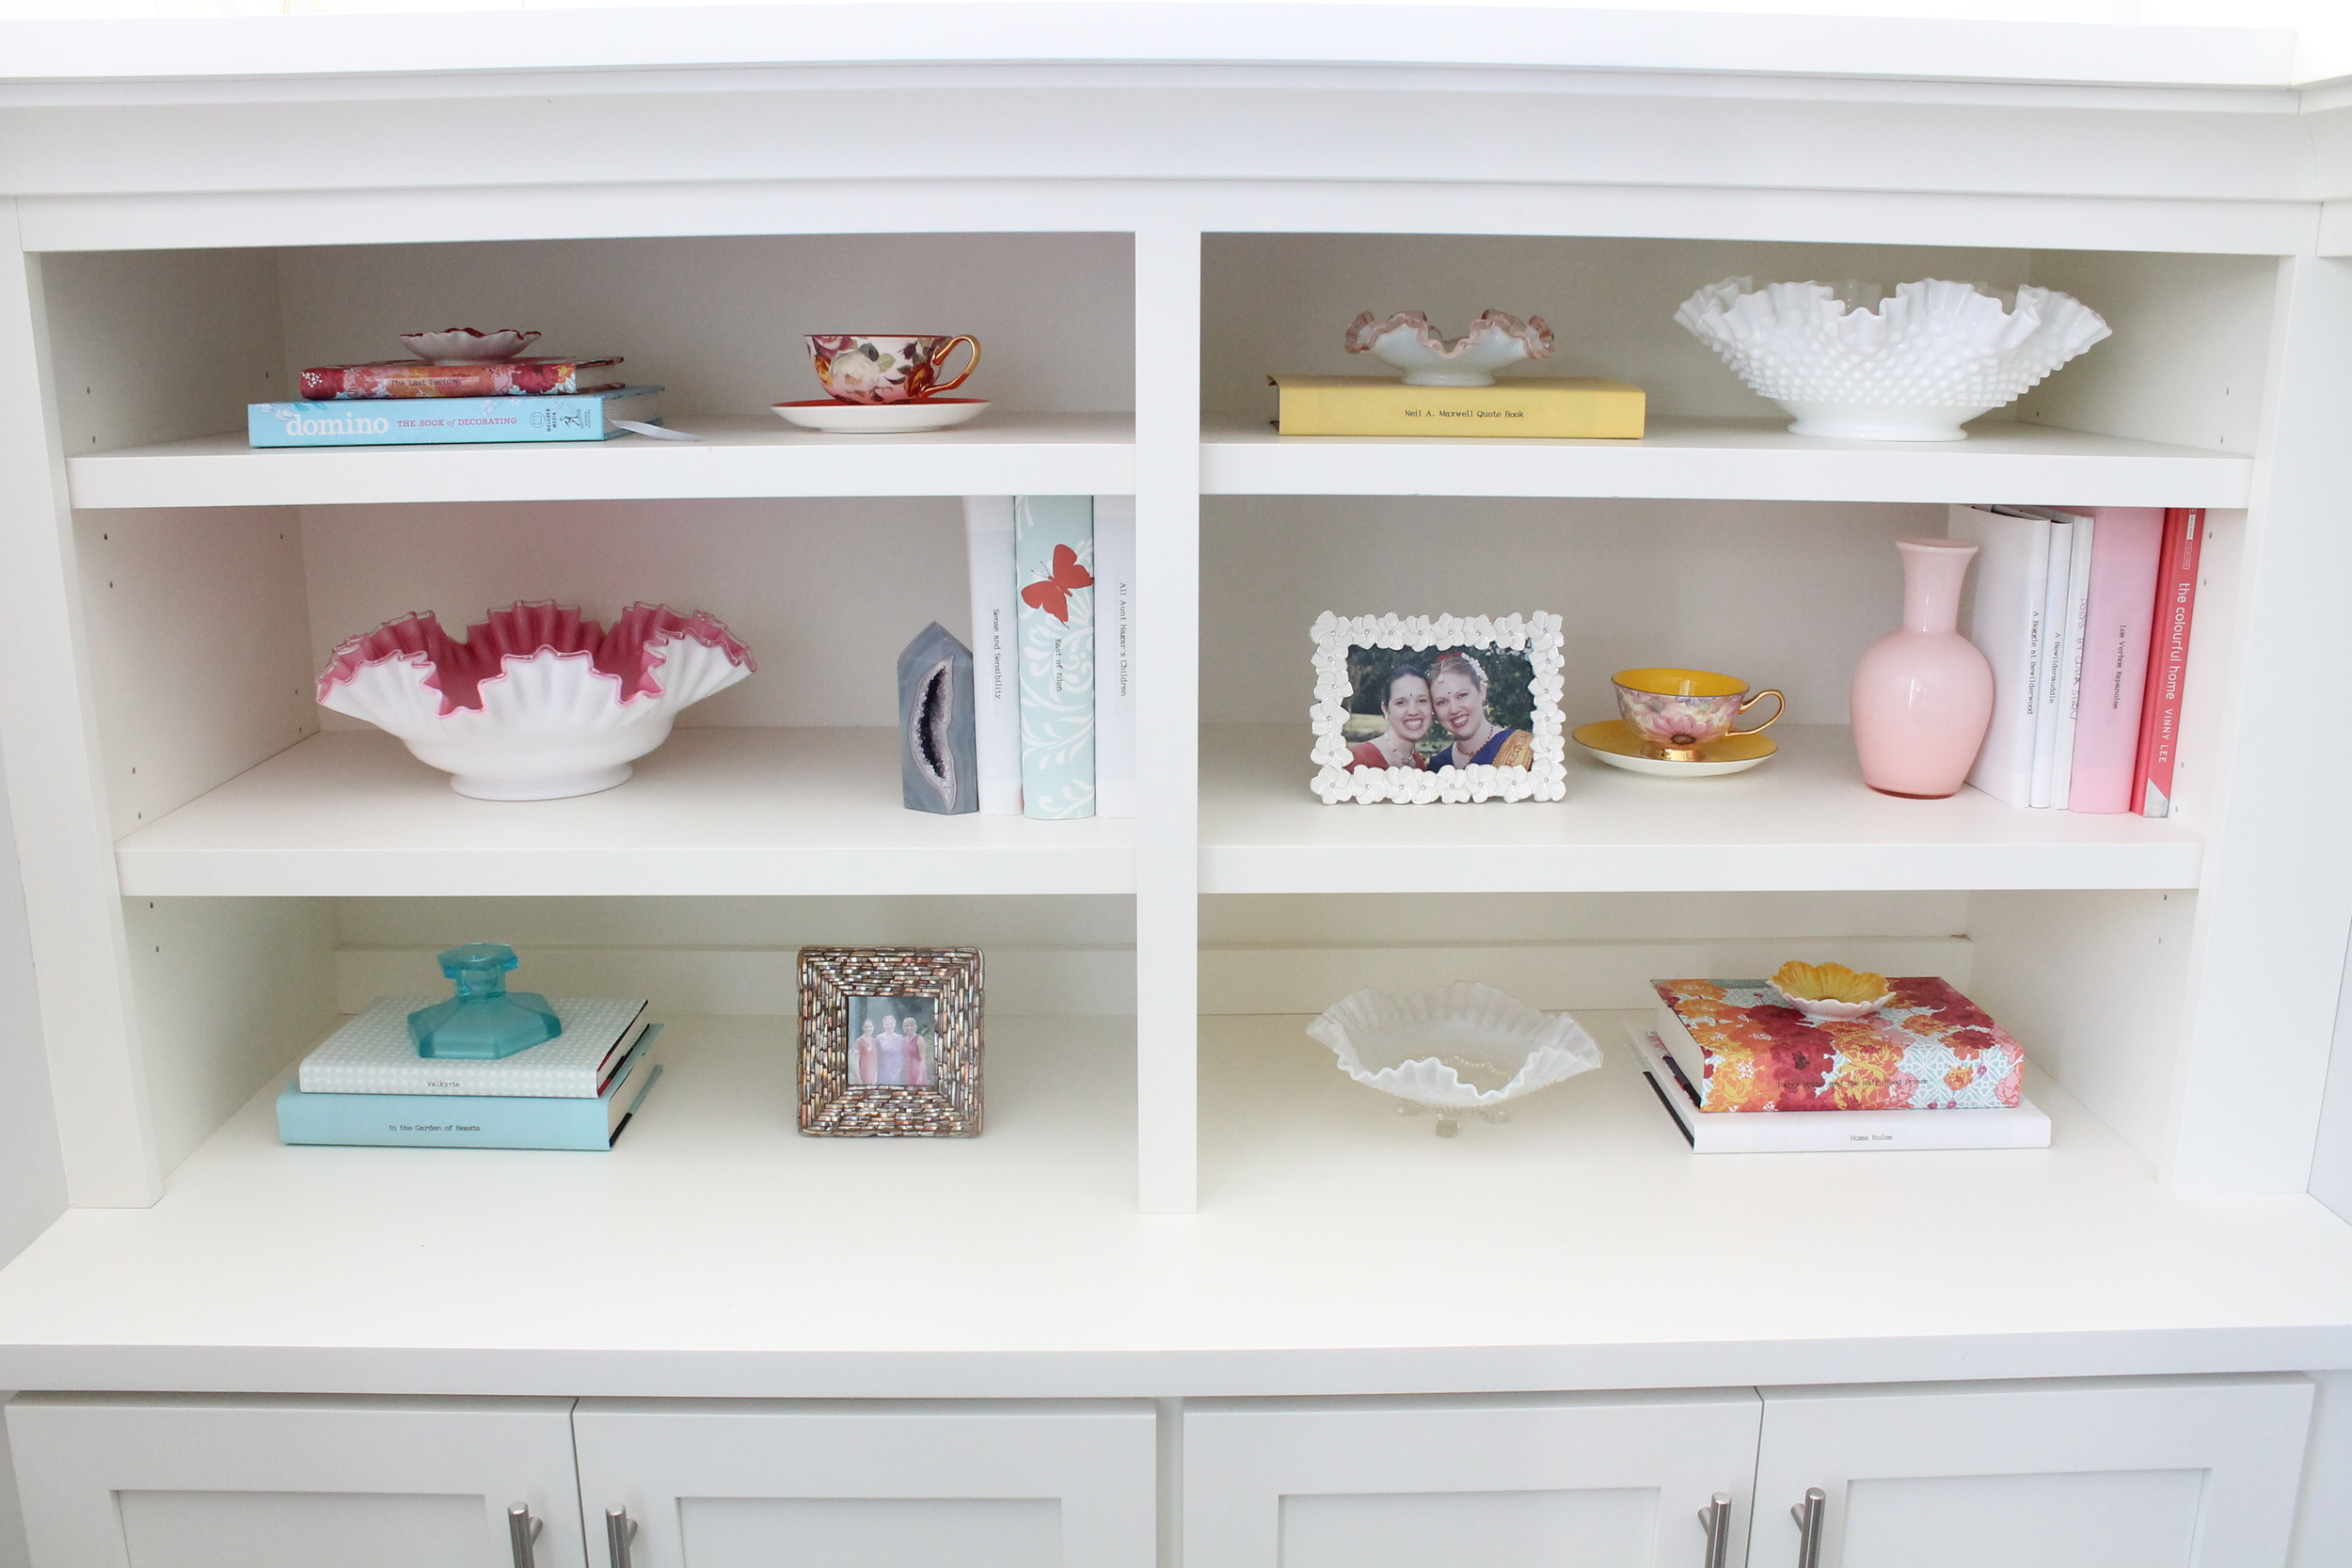 Built in Bookshelf styling with paper covered books and vintage ruffled glass bowls.